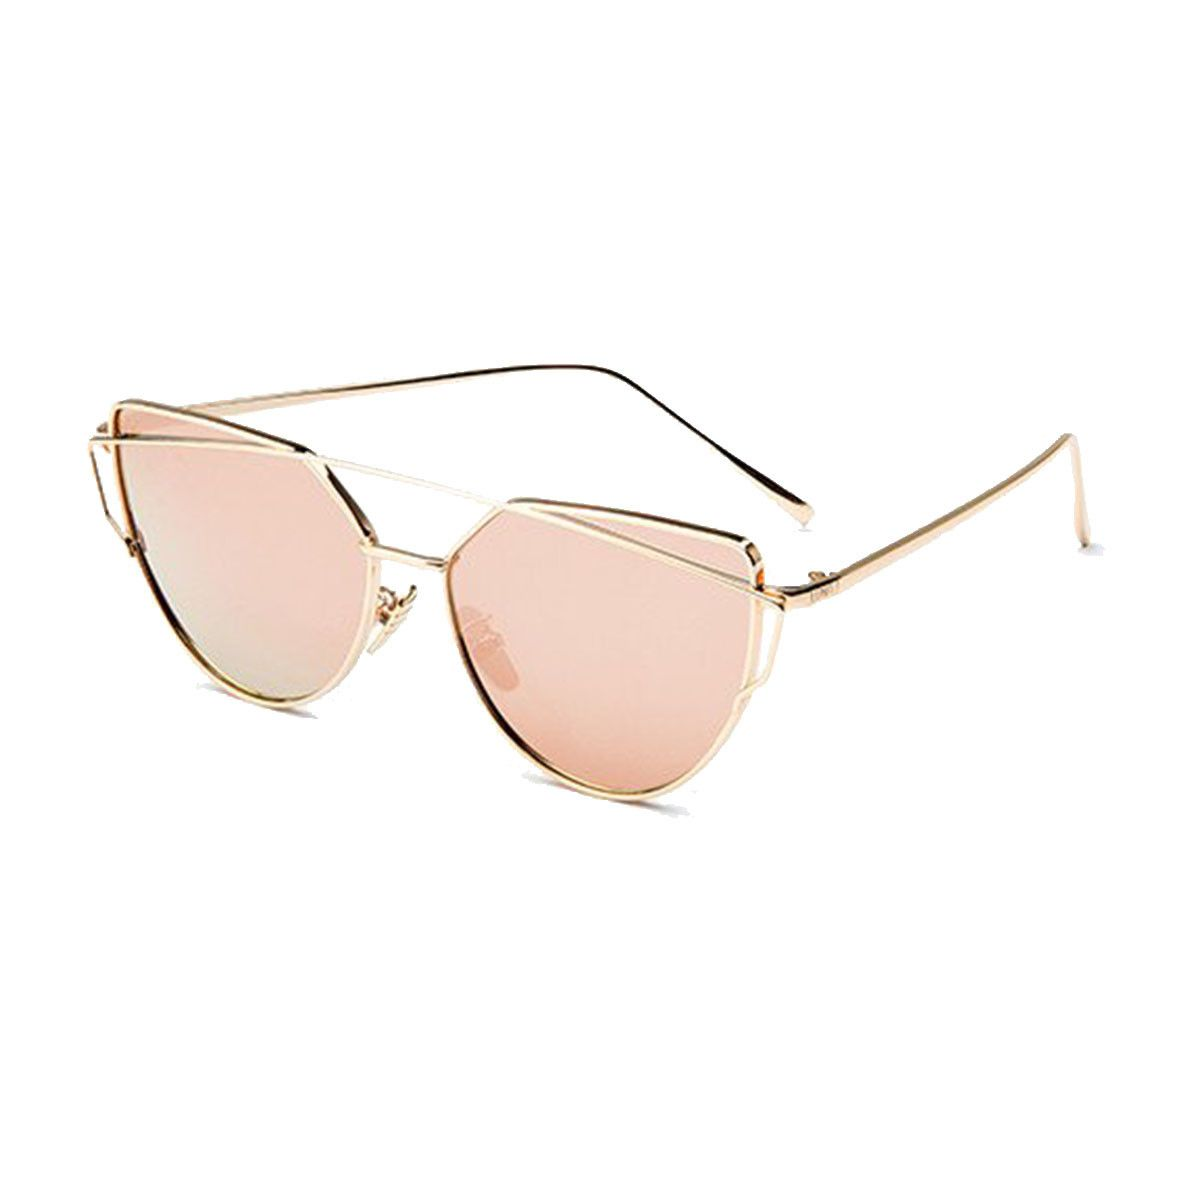 fashion sunglasses online  Shop Glow Glam XO CALI luxe fashion sunglasses online \u2013 GLOW GLAM ...